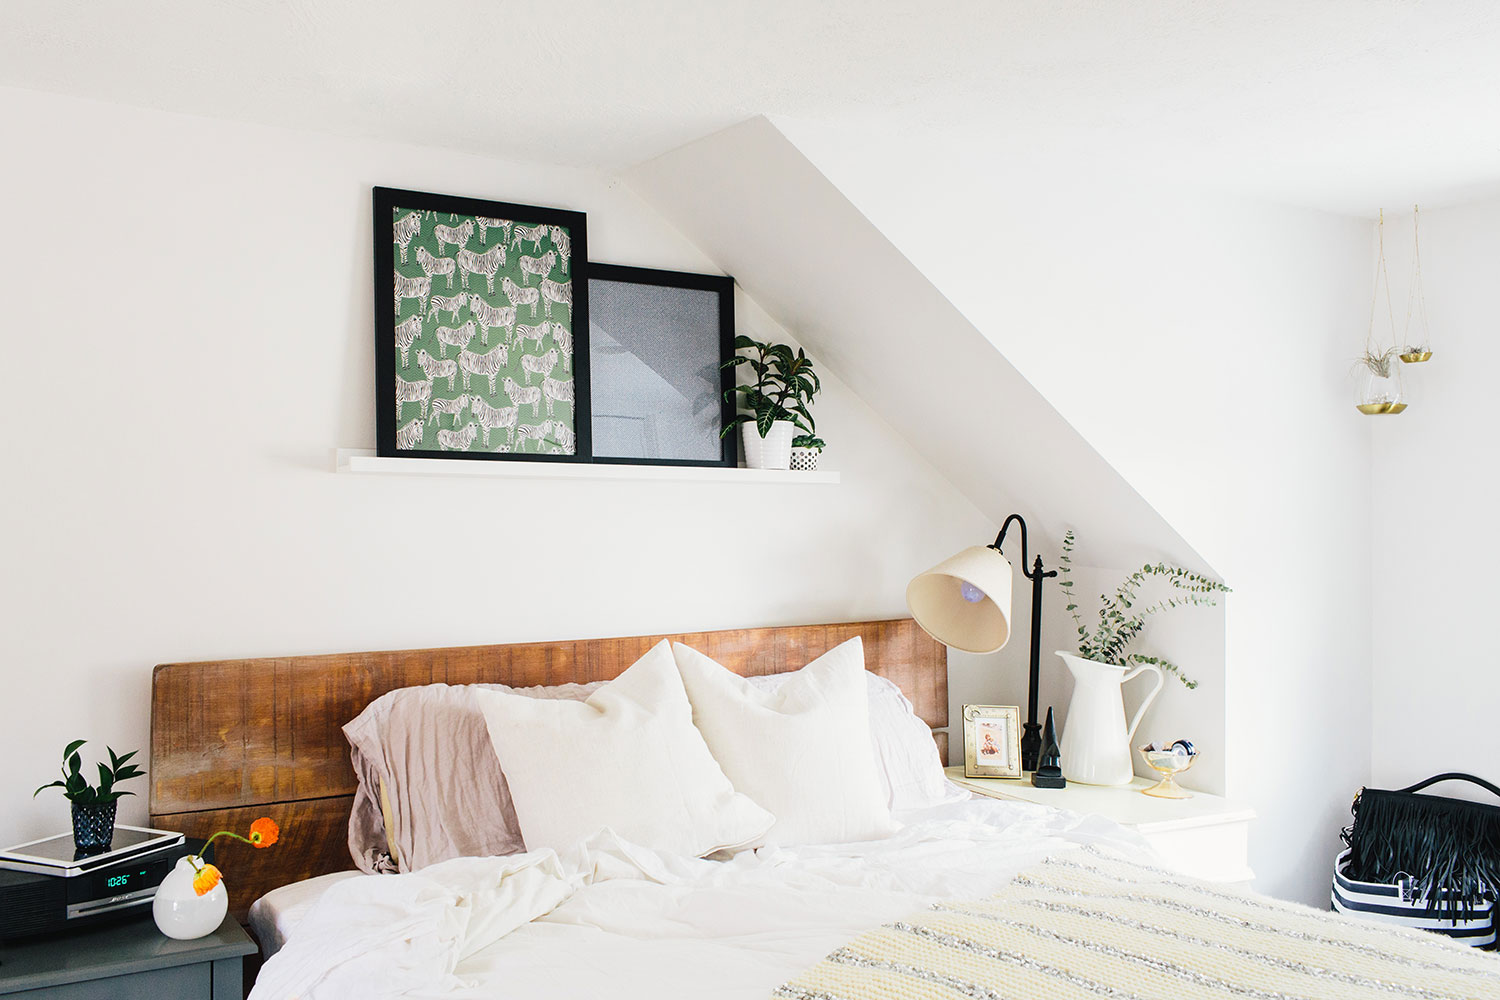 #farmhousedialfano master bedroom / circa early 2015 on design*sponge / photo by  joyelle west